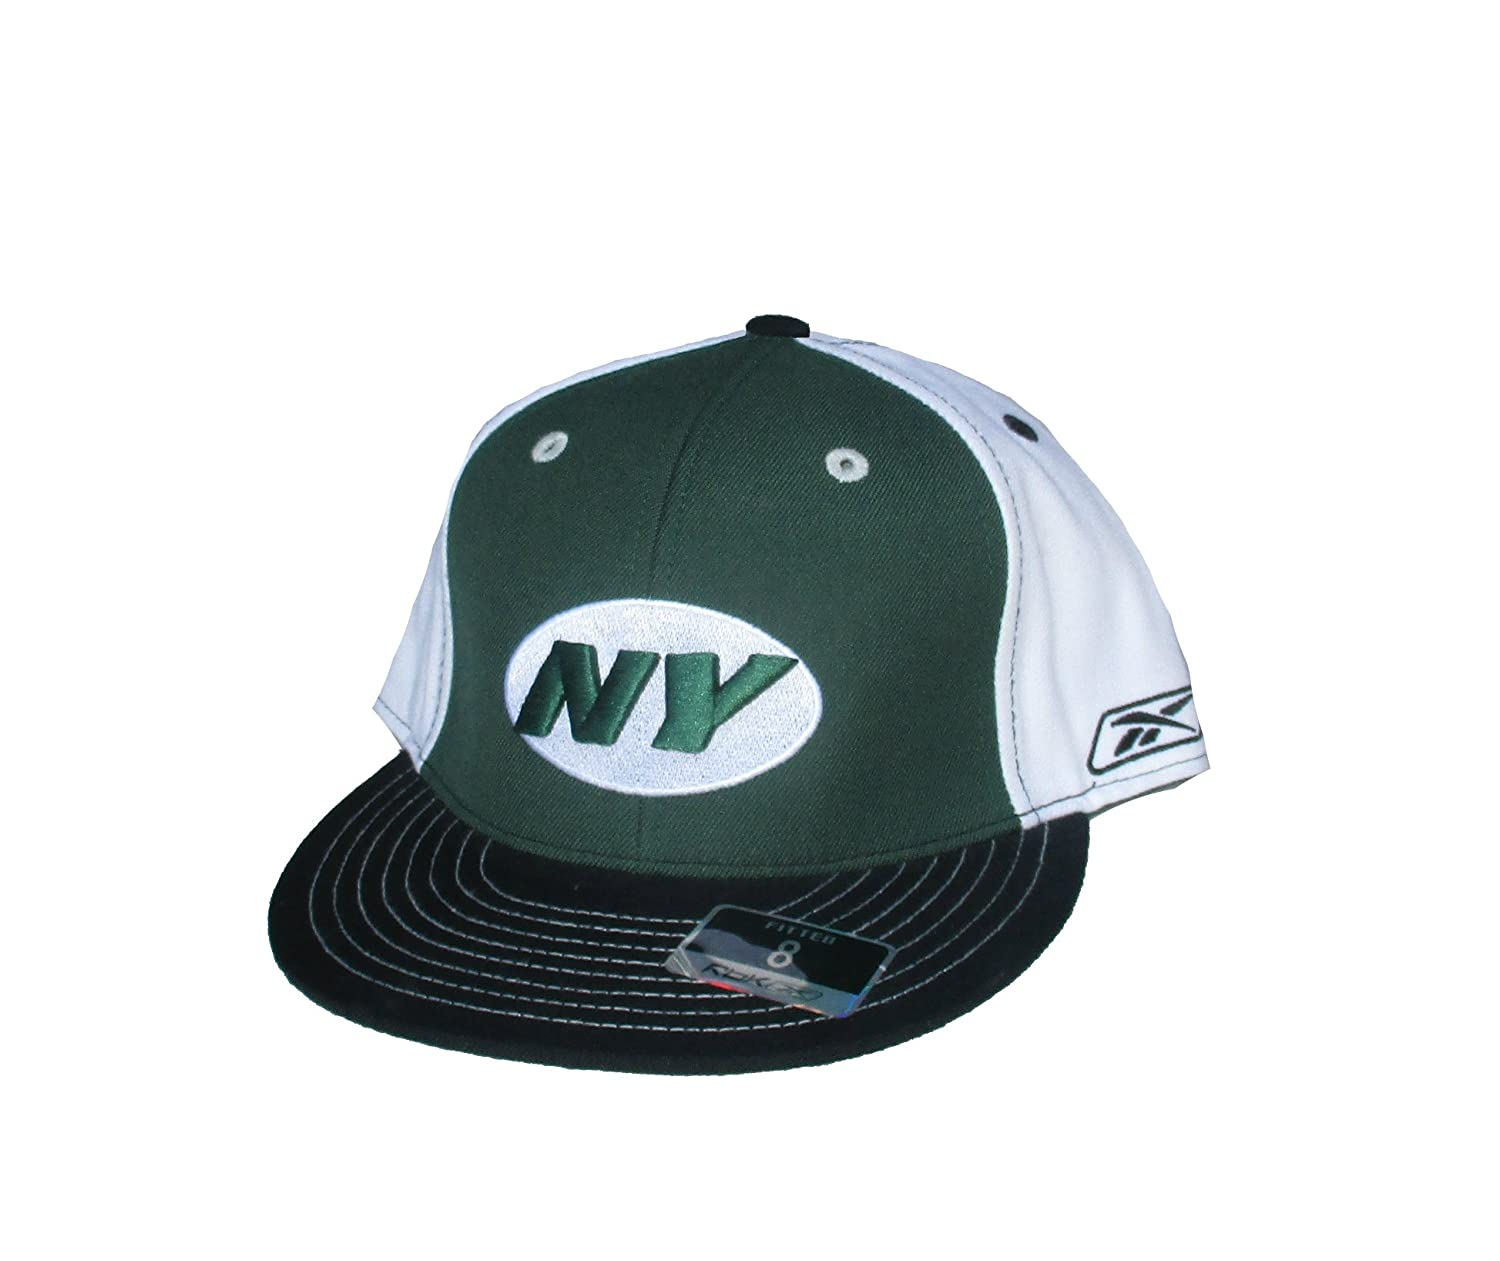 94474186bf7 Amazon.com  New York Jets Fitted Size 8 Tr-Tone Hat Cap - Green   Black    White  Sports   Outdoors